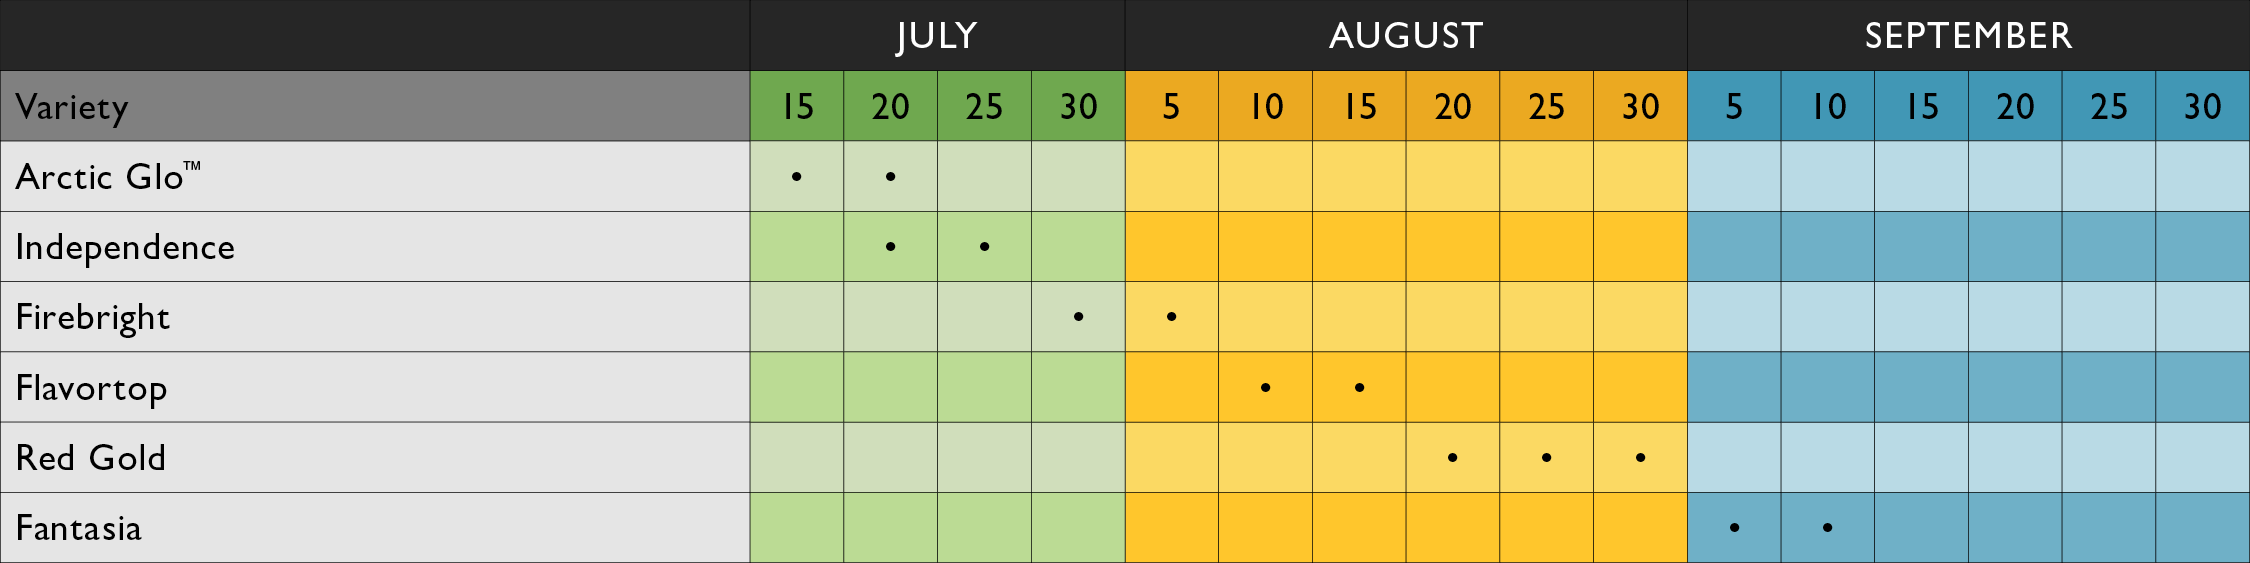 Harvest_Dates-Nectarines.png